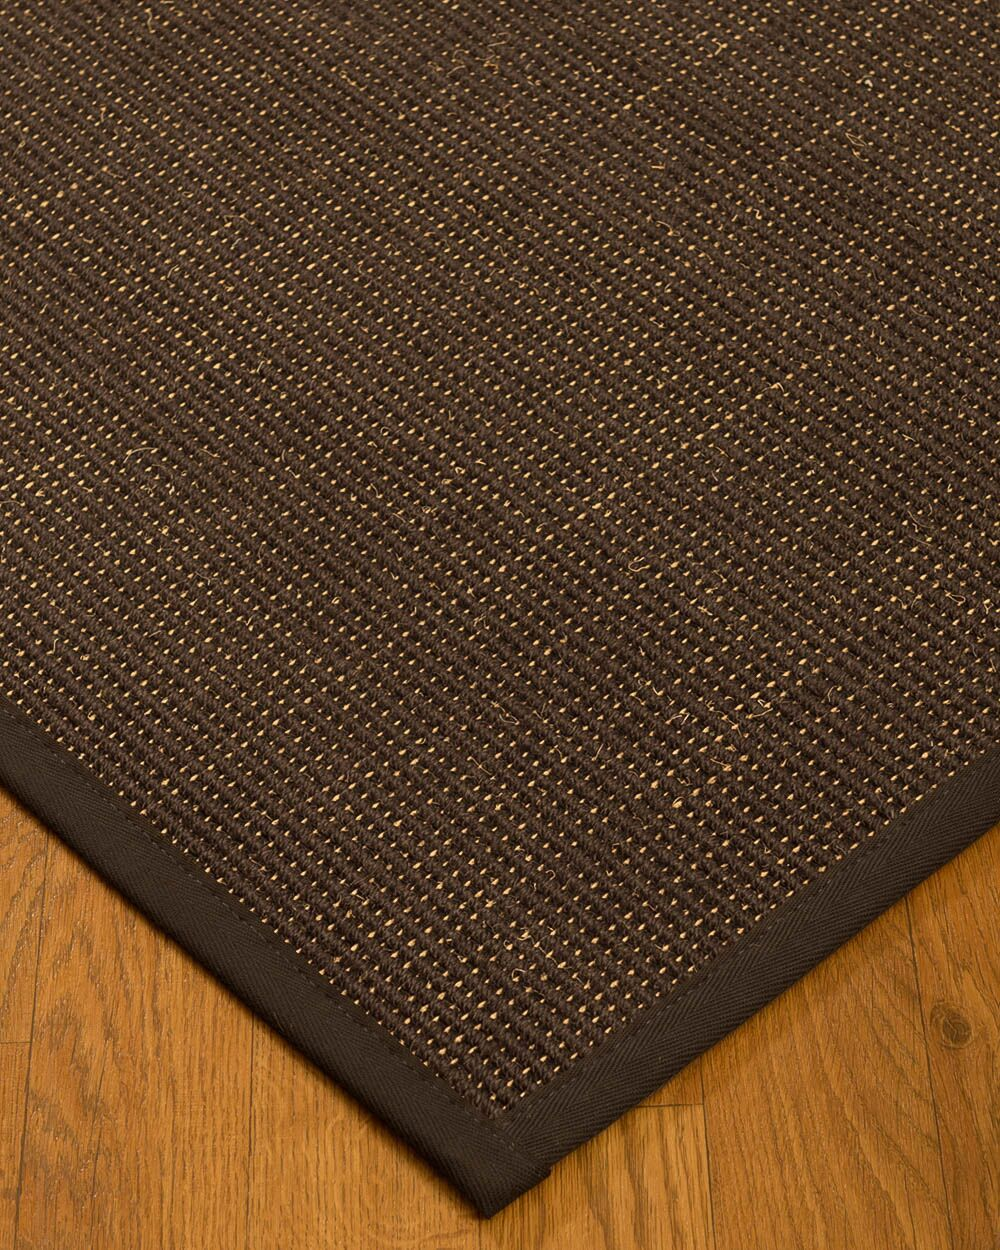 Kersh Border Hand-Woven Brown Area Rug Rug Size: Rectangle 8' x 10', Rug Pad Included: Yes